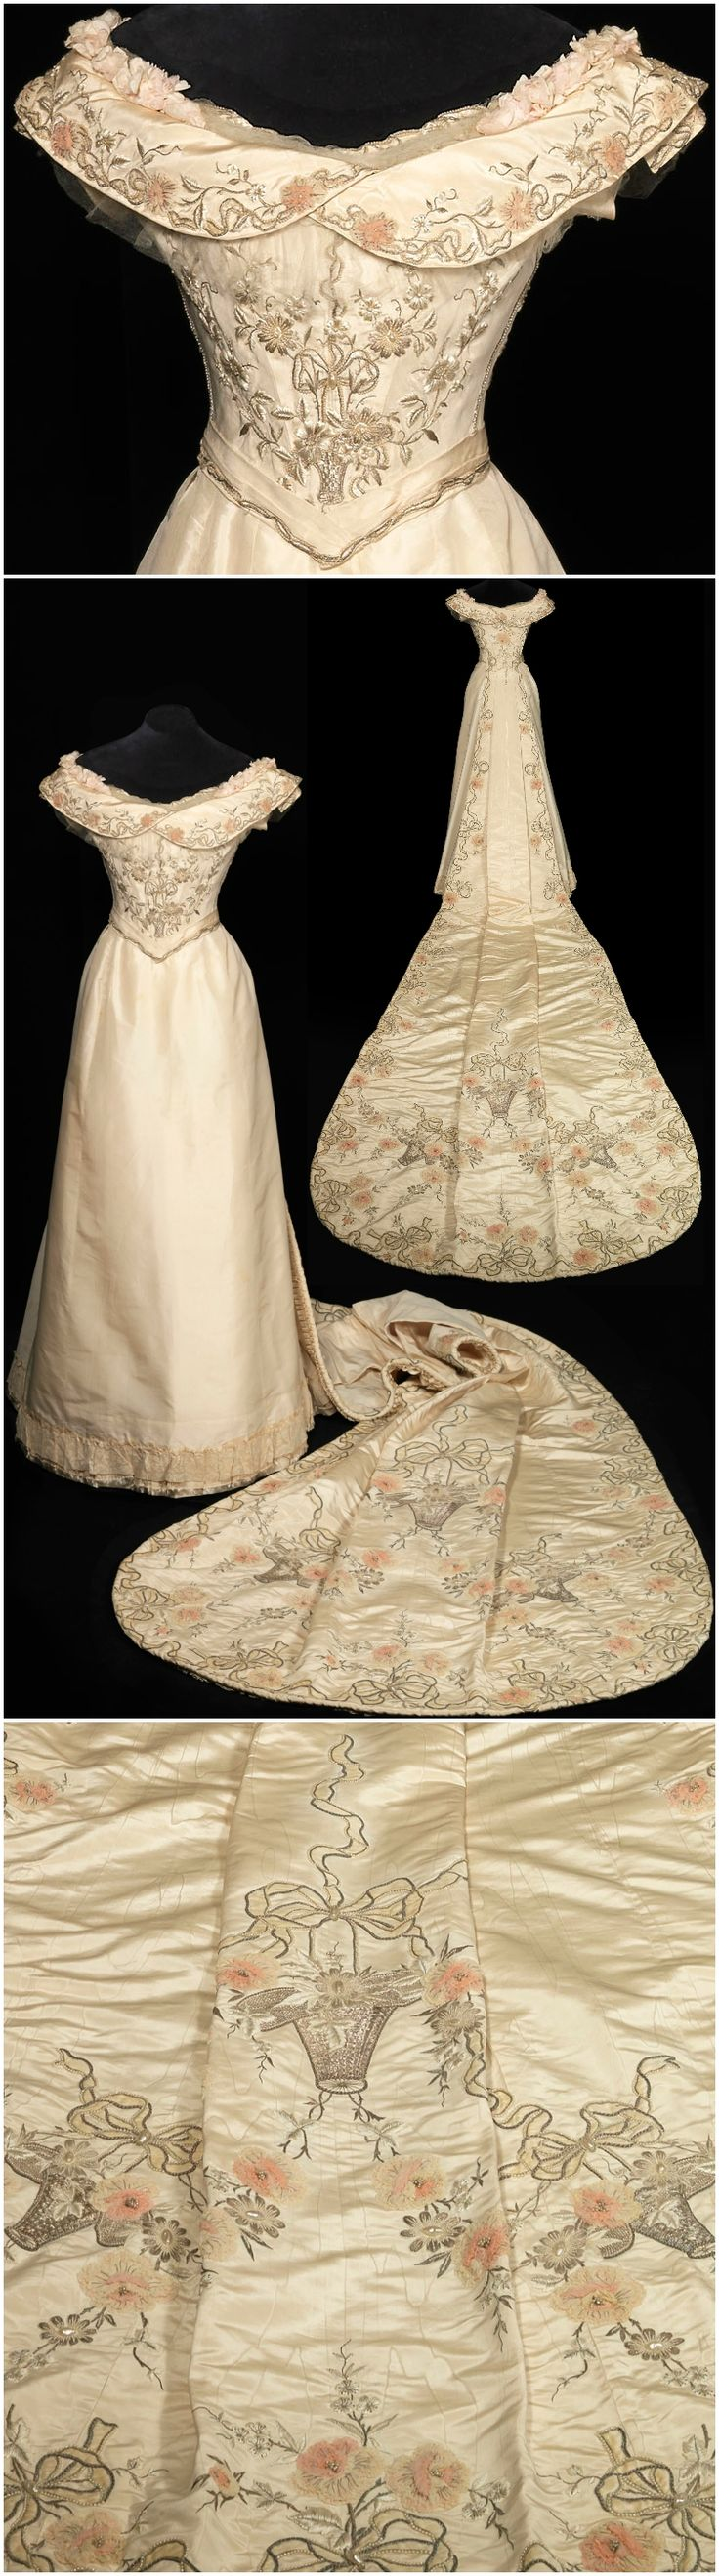 Court train, by Nicaud of Paris, 1901, Paleis Het Loo. Photos: Stef Verstraaten. From the trousseau of Queen Wilhelmina of the Netherlands. The gala bodice was created later. Silver wire, glass beads, tulle, tarlatan. Louis XVI-style embroideries.